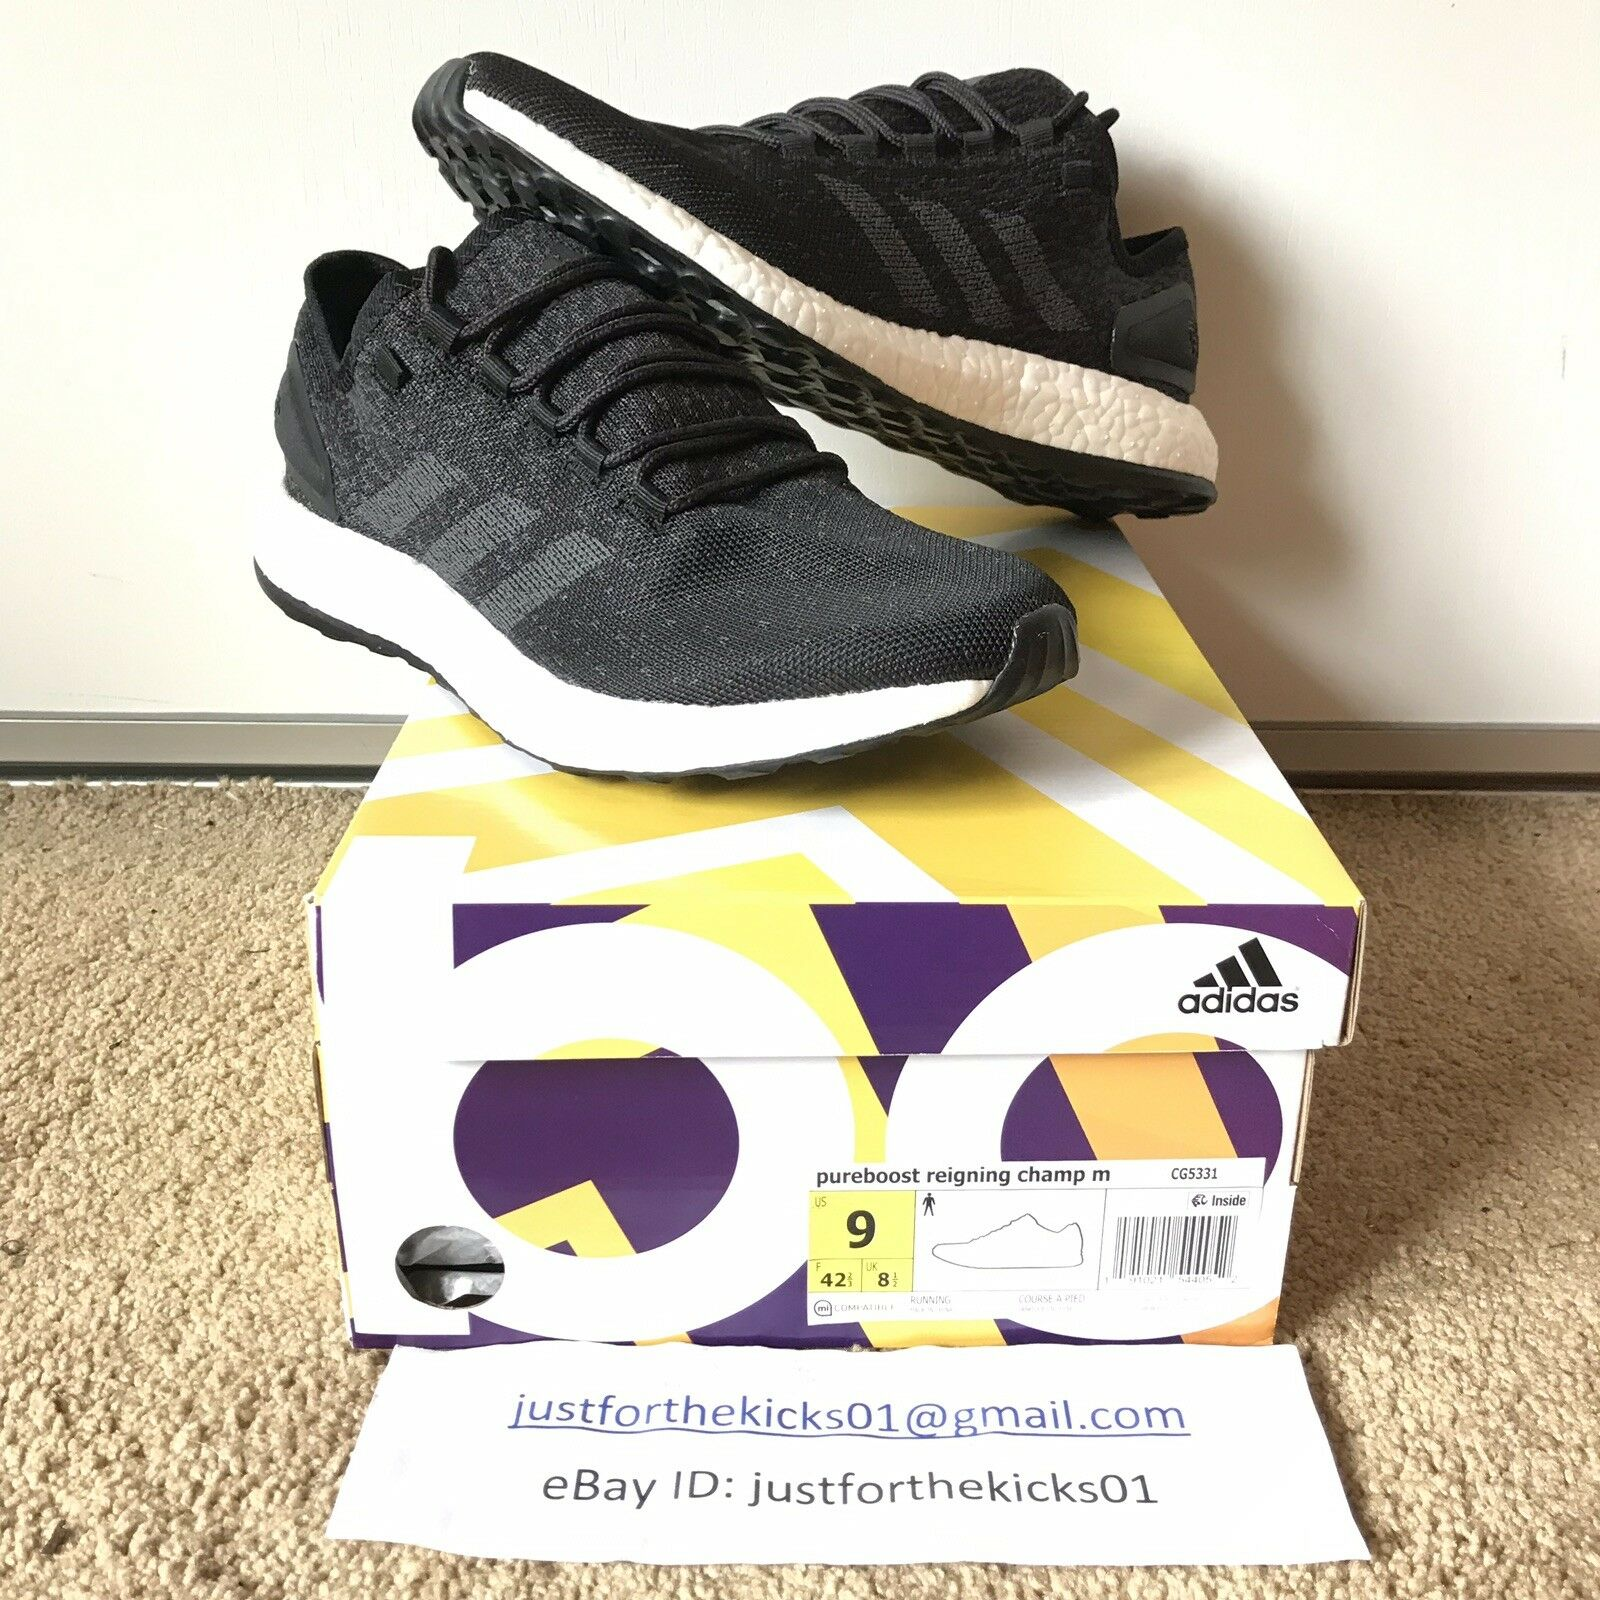 ADIDAS PUREBOOST REIGNING REIGNING REIGNING CHAMP CG5331 MEN'S SIZE 9.0  160 0bd219